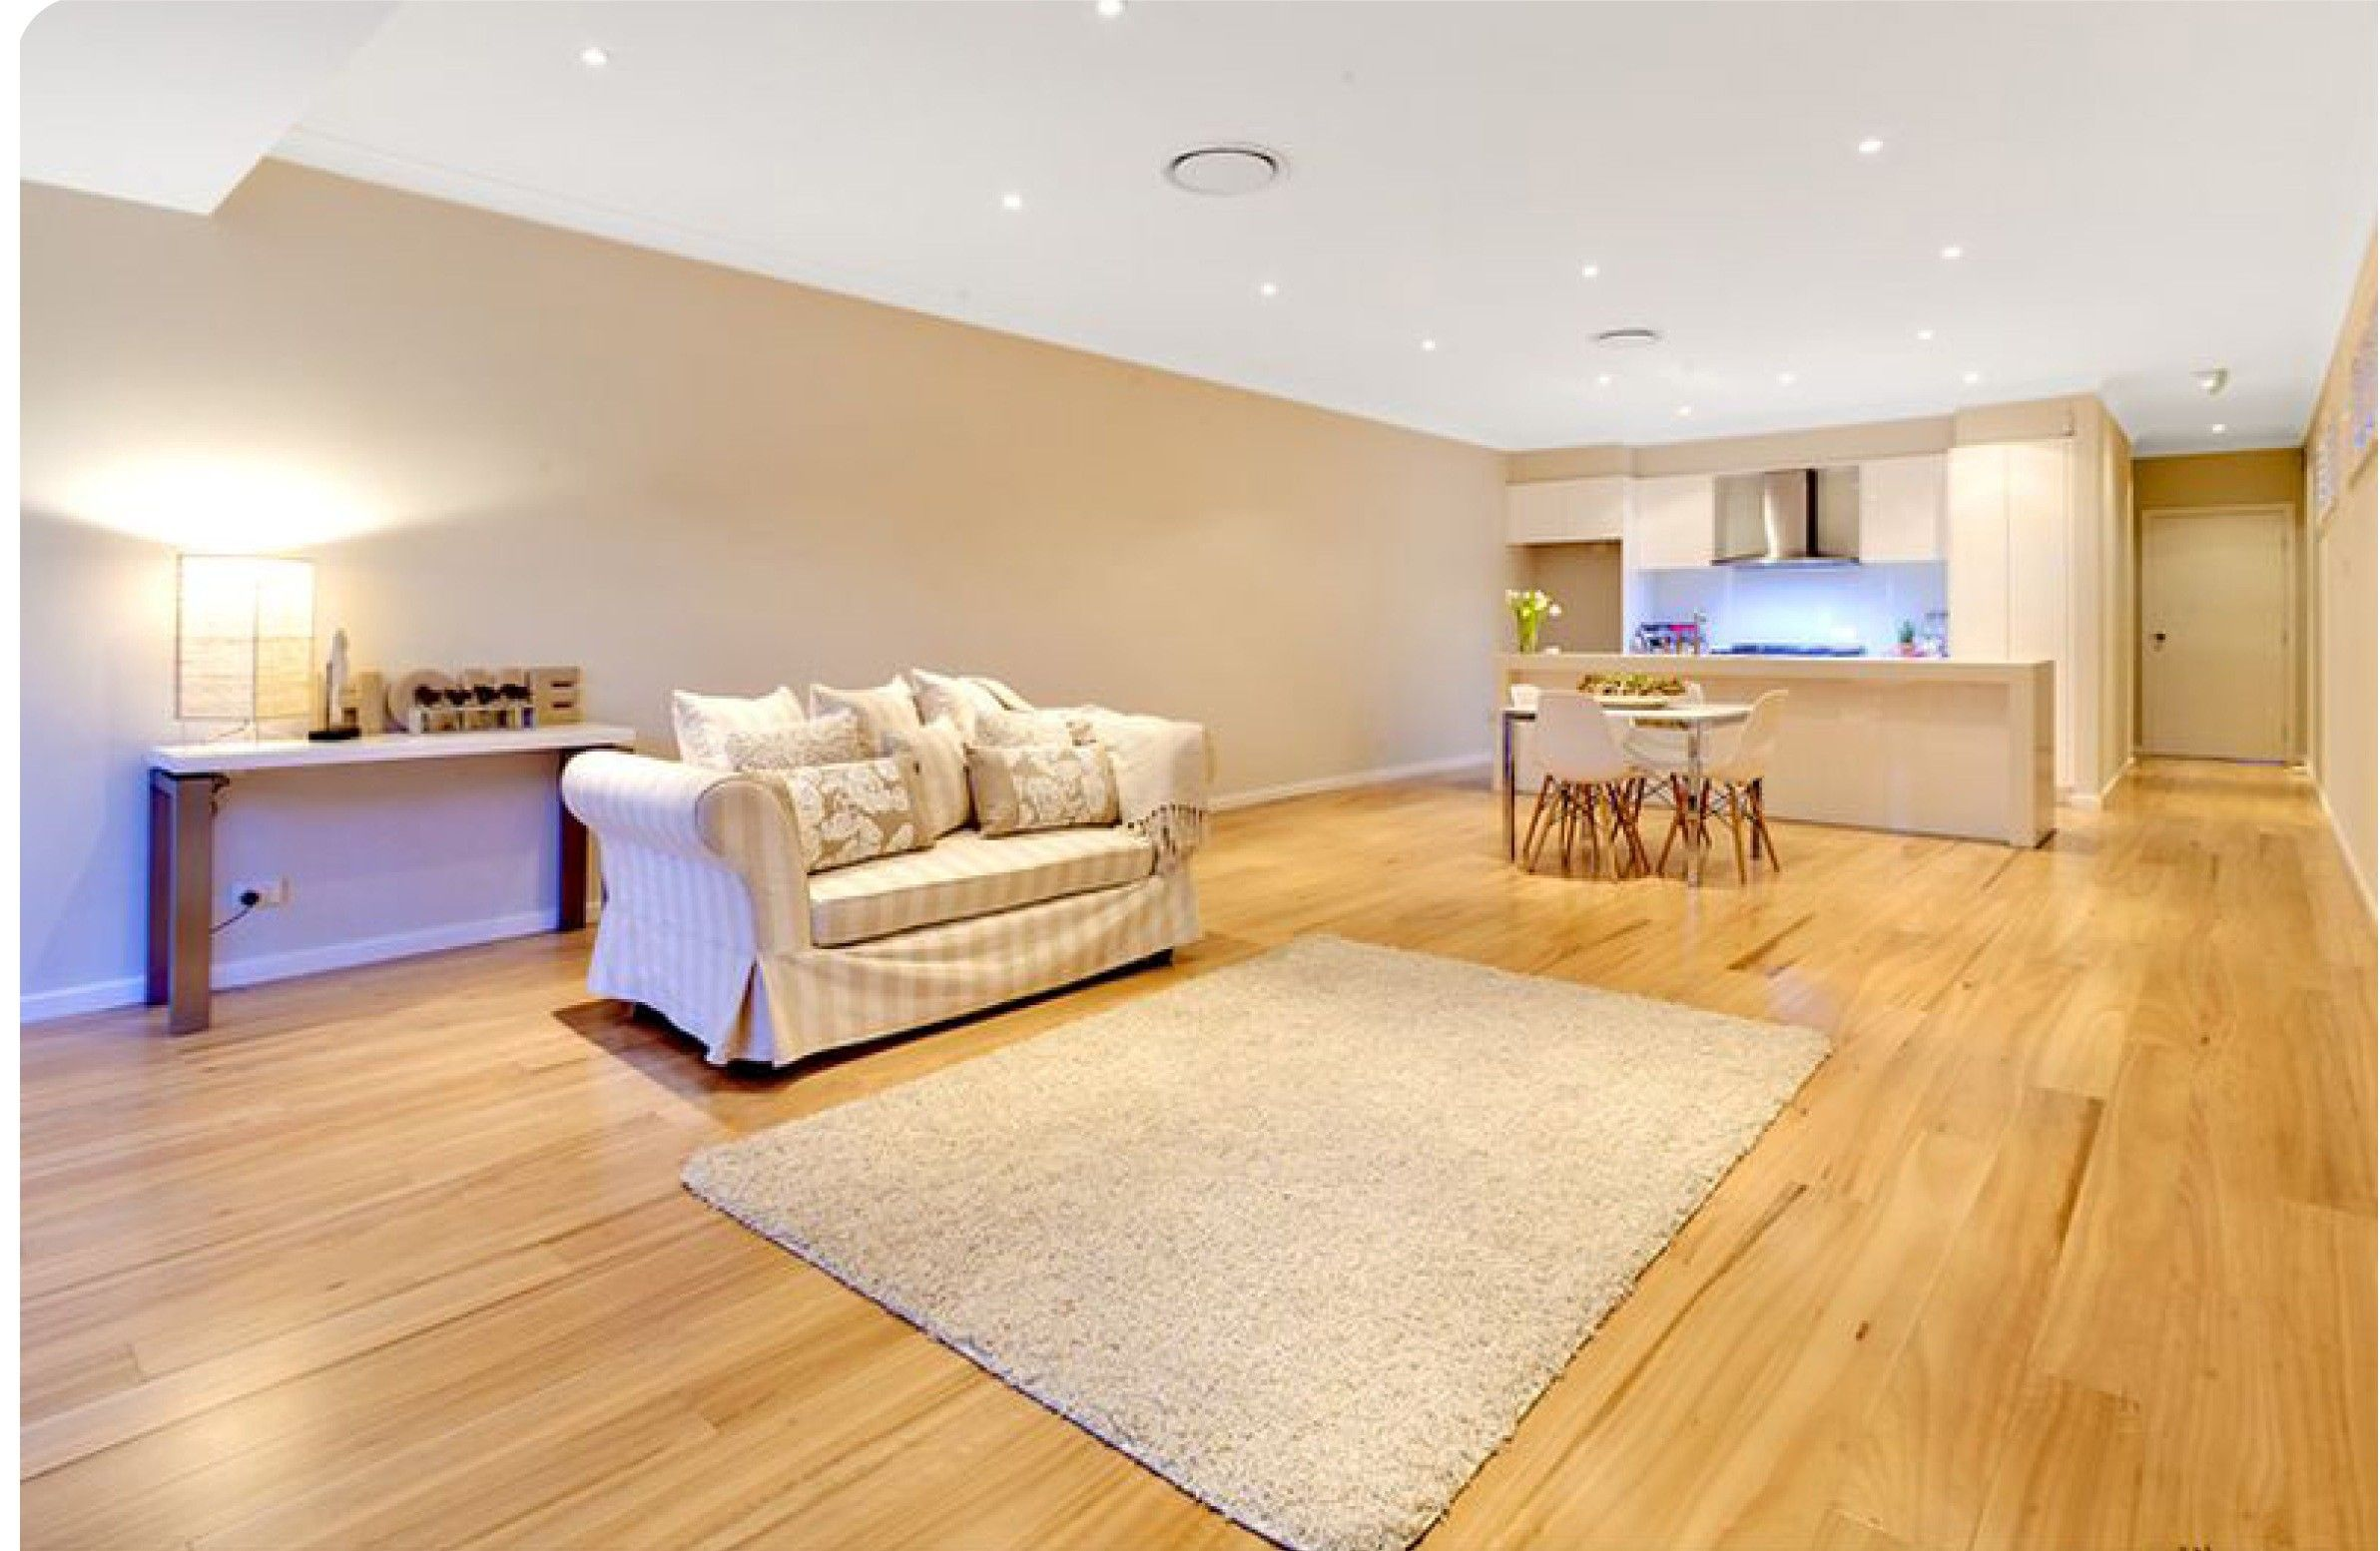 Home Home, Flooring, Timber flooring